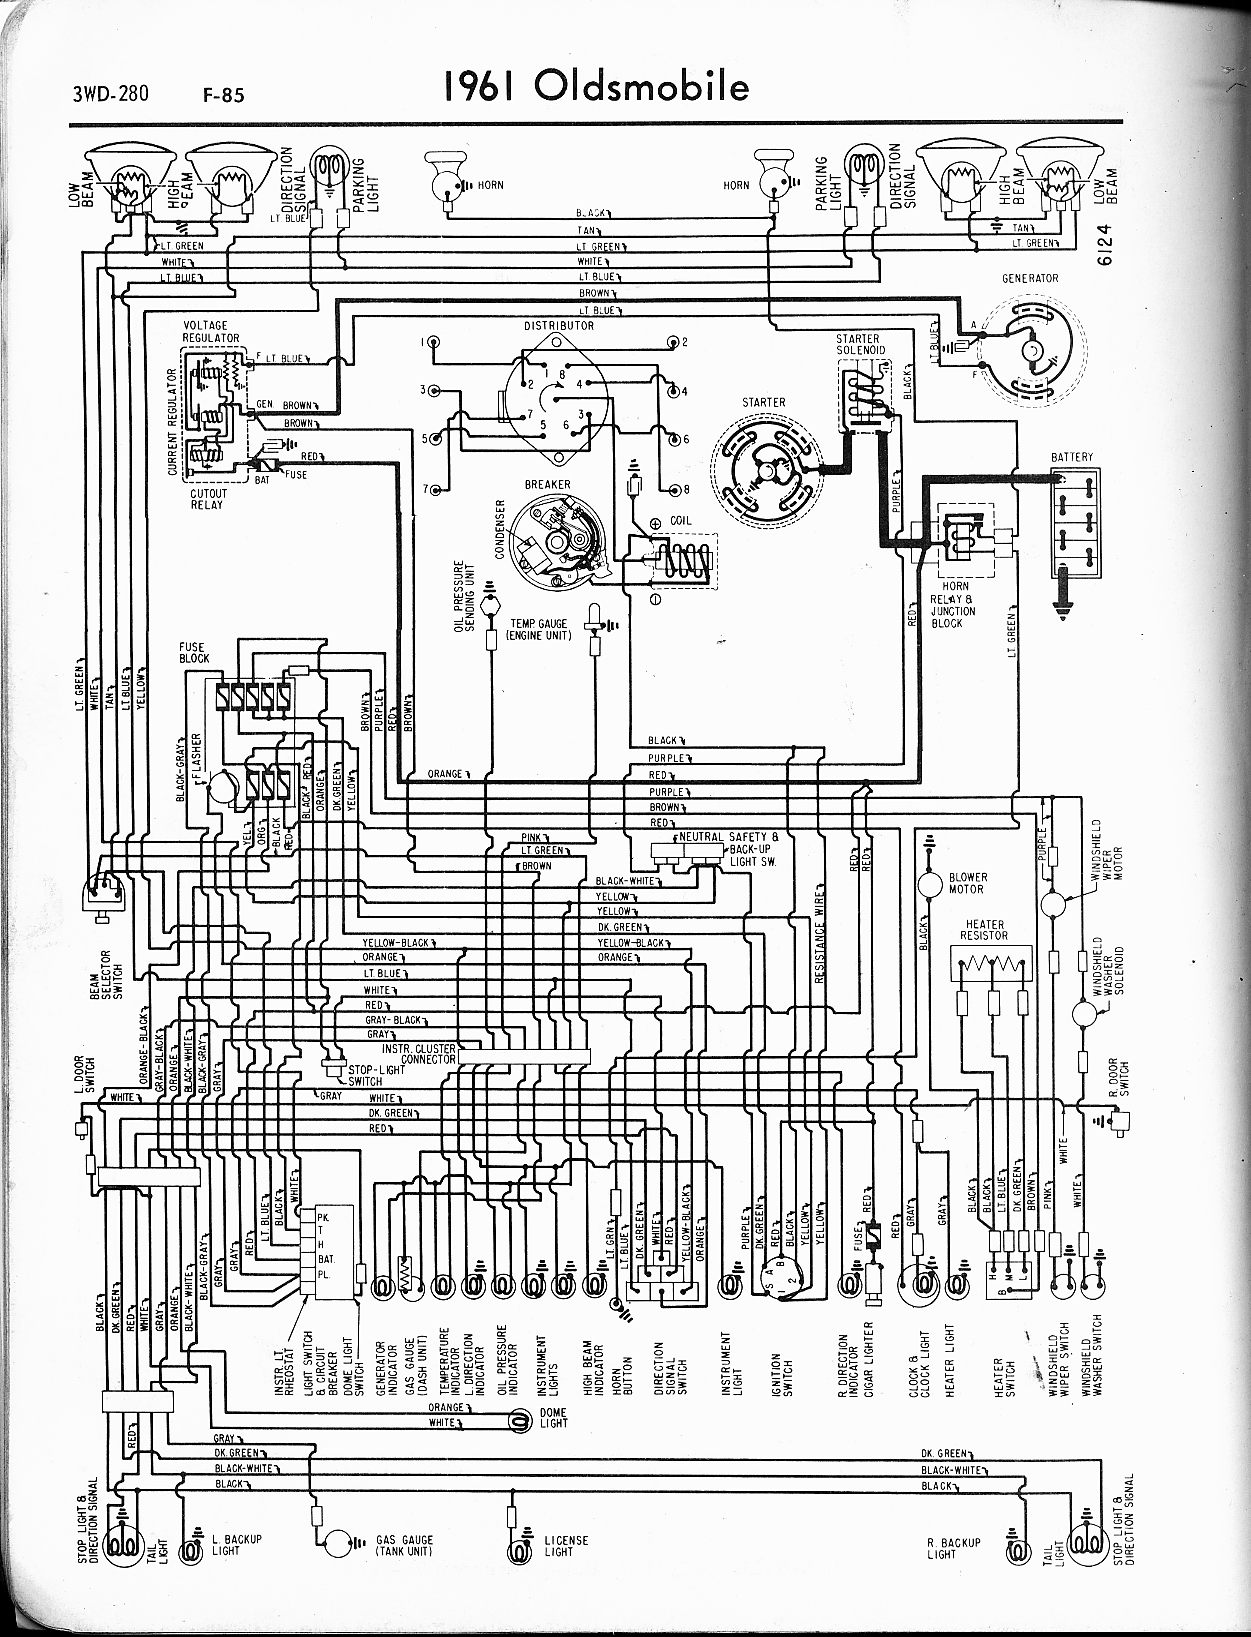 1957 oldsmobile wiring diagram [ 1251 x 1637 Pixel ]